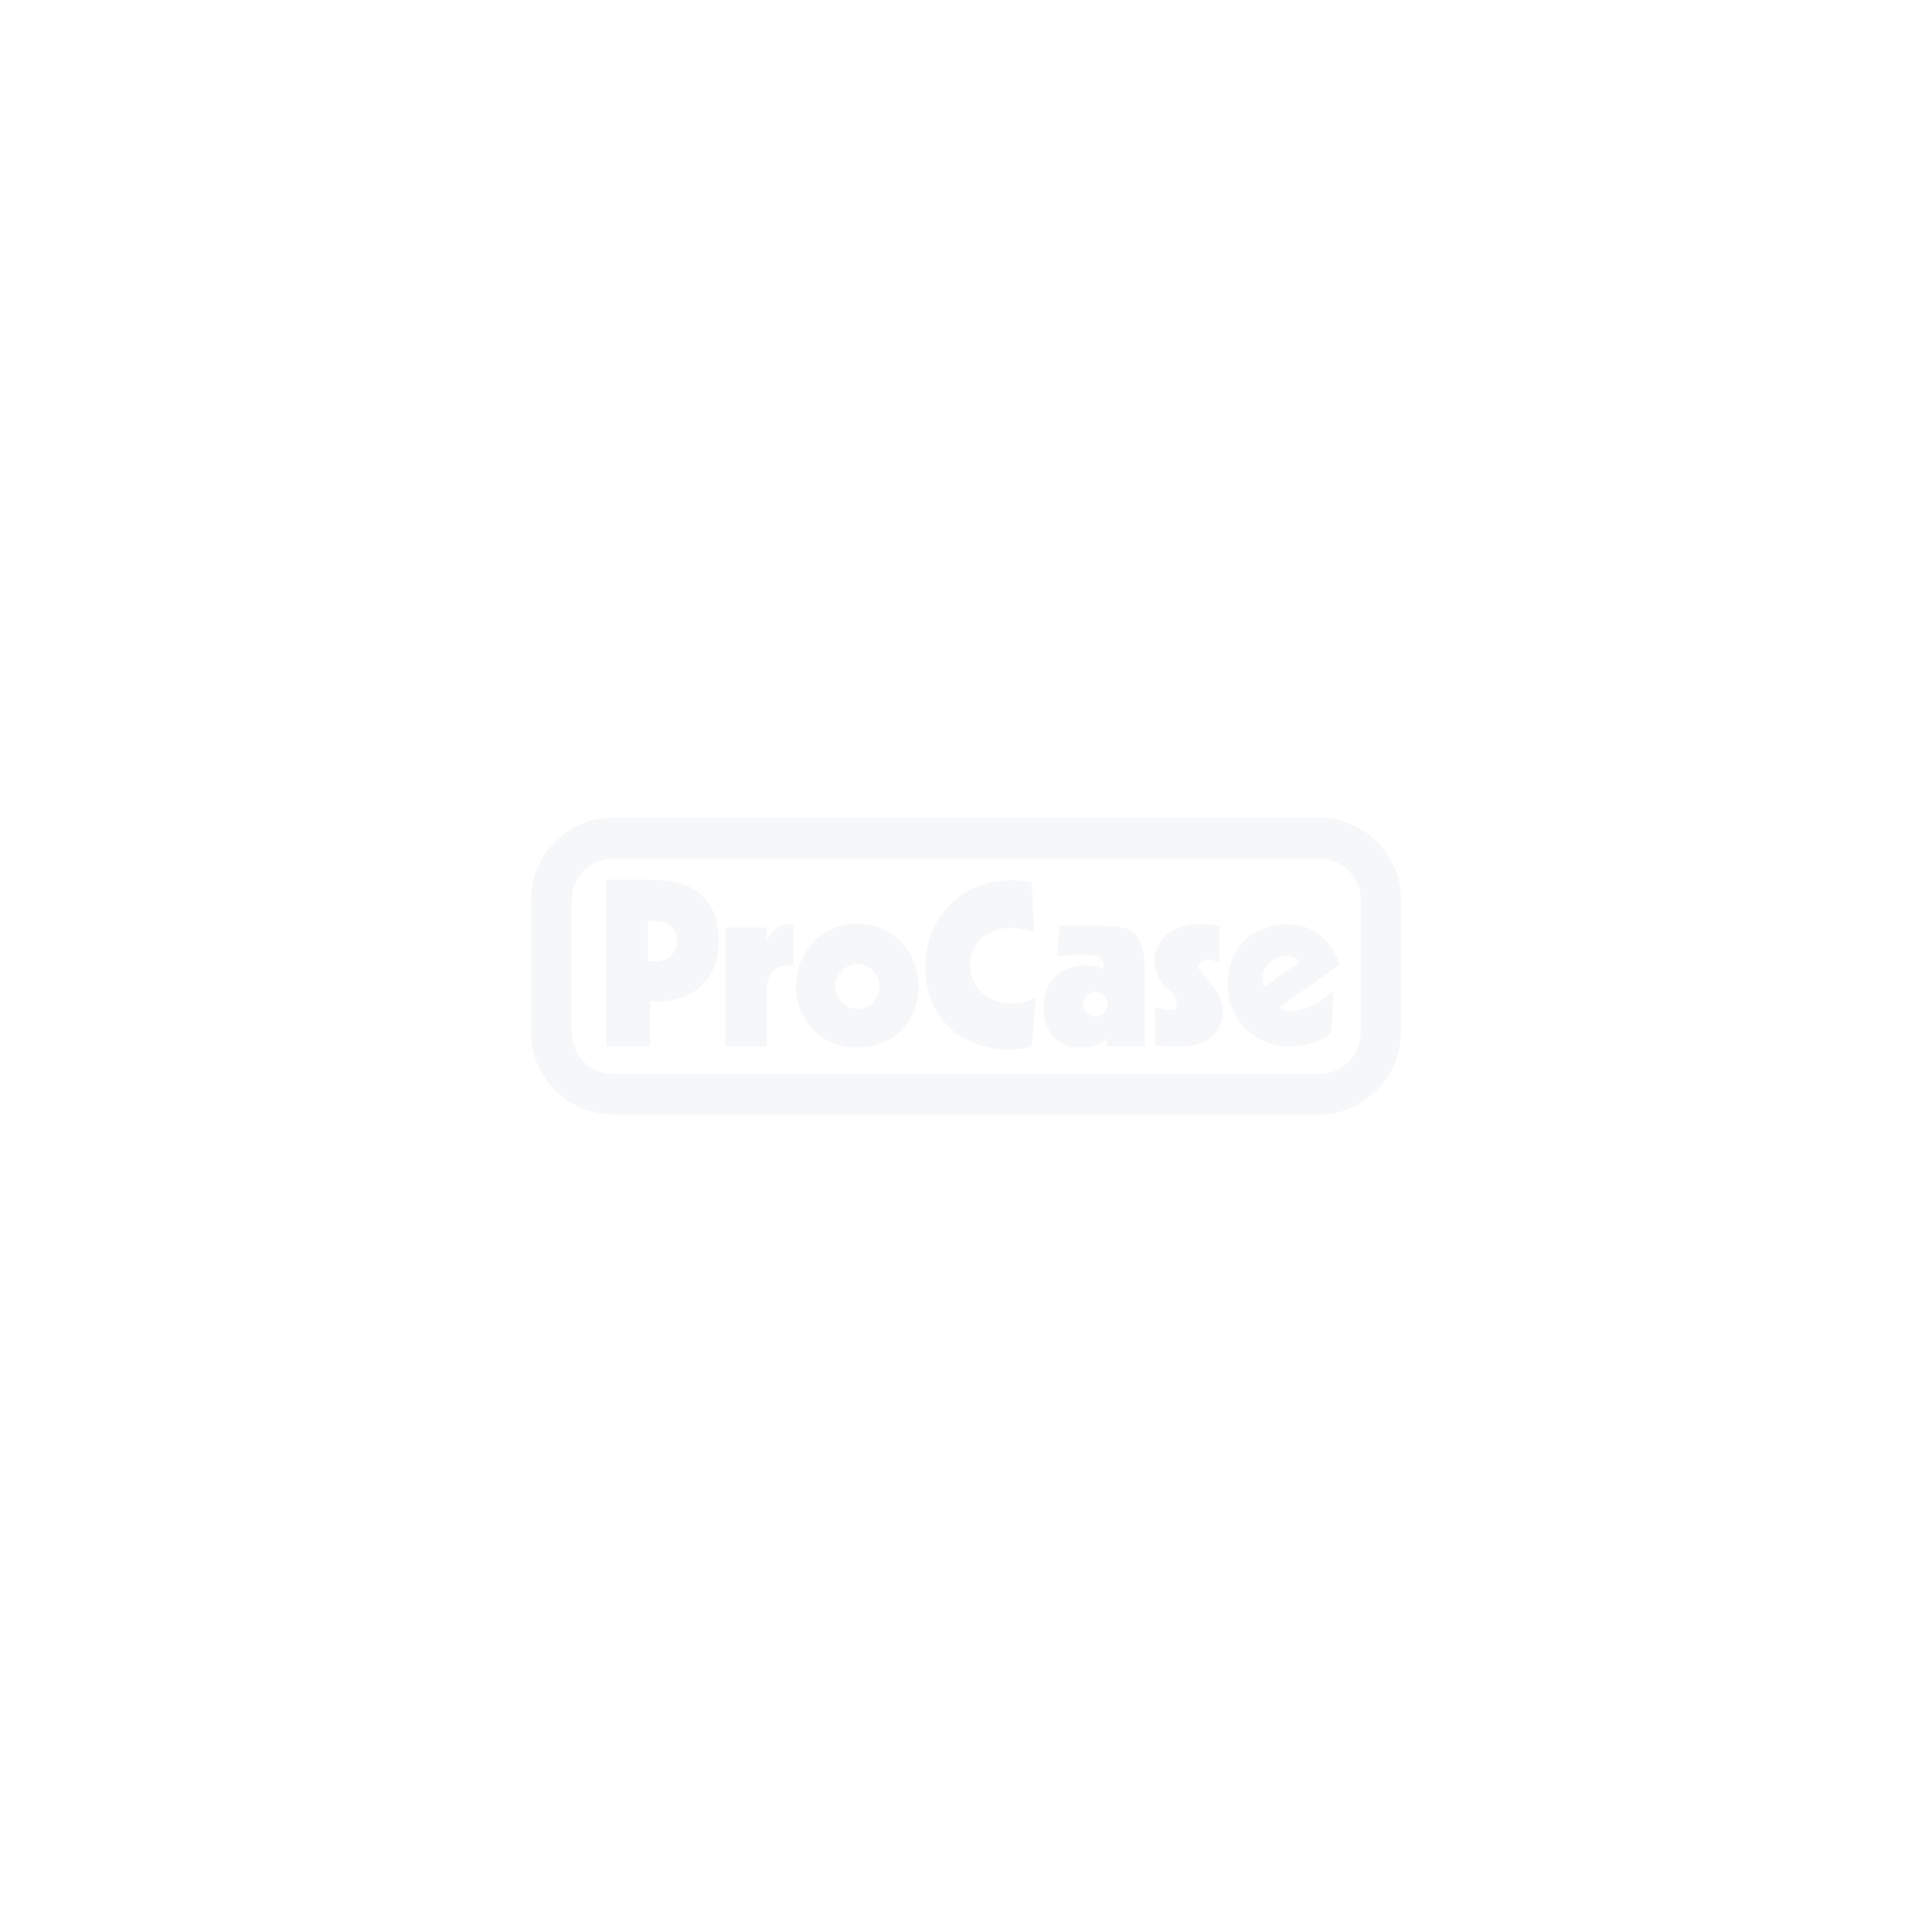 Flightcase für 6x JBLed A7 Zoom / A4 3